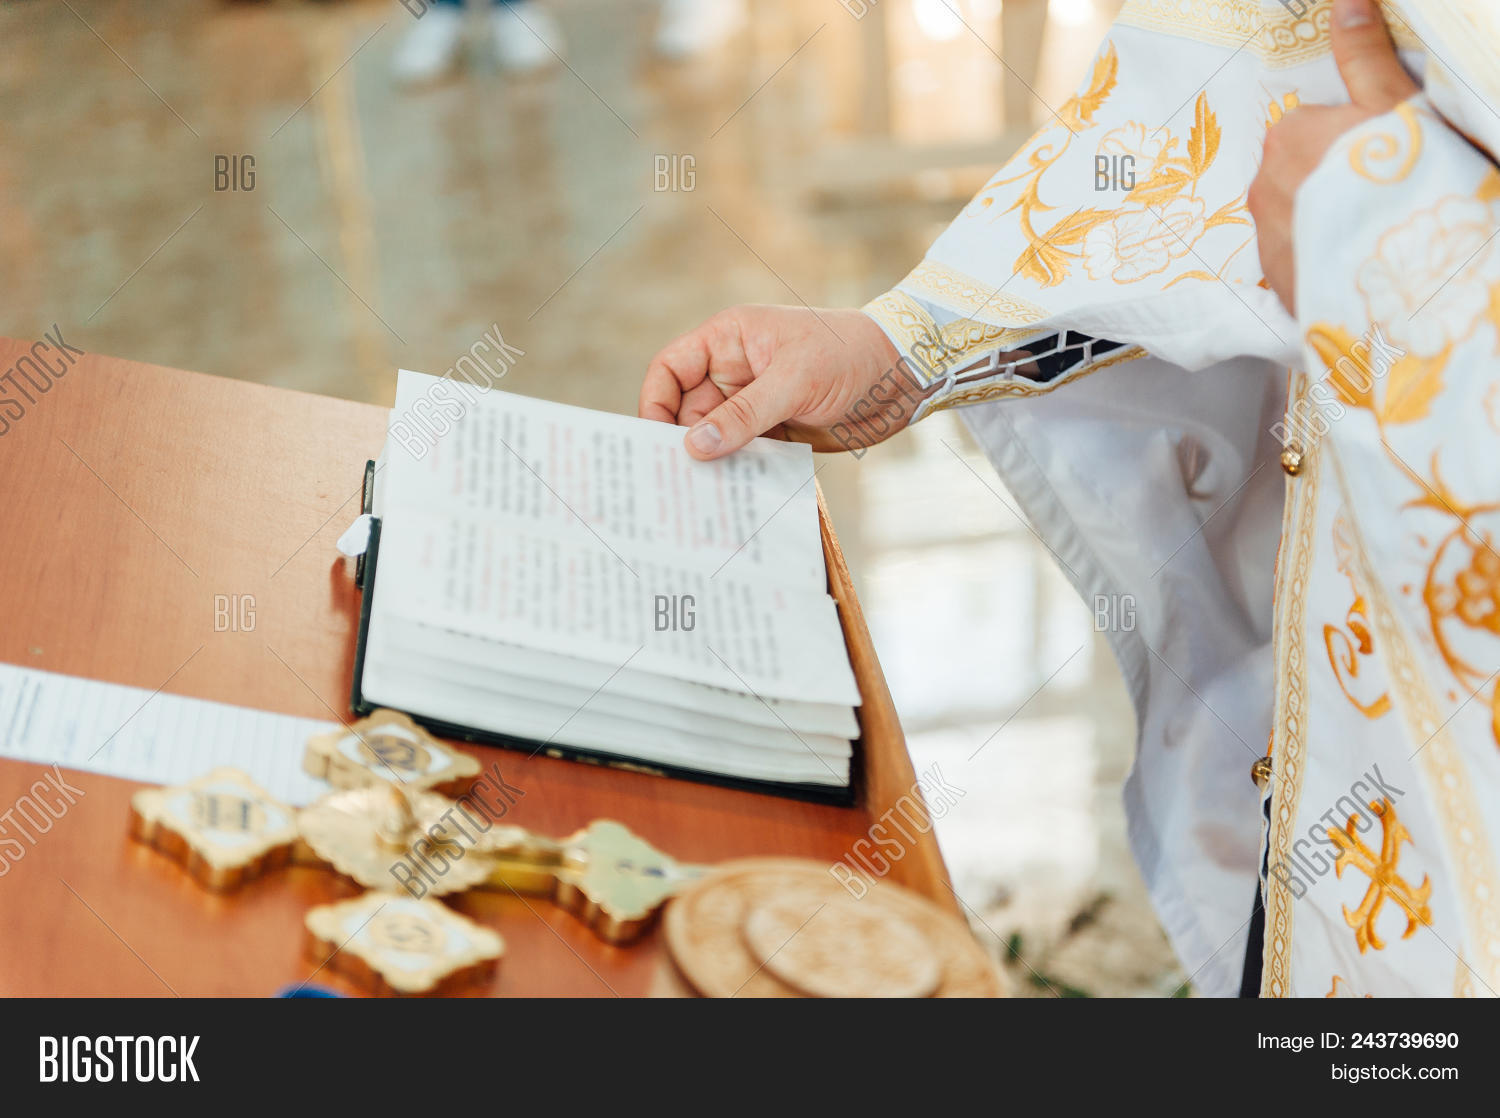 Priest Blesses Image Photo Free Trial Bigstock